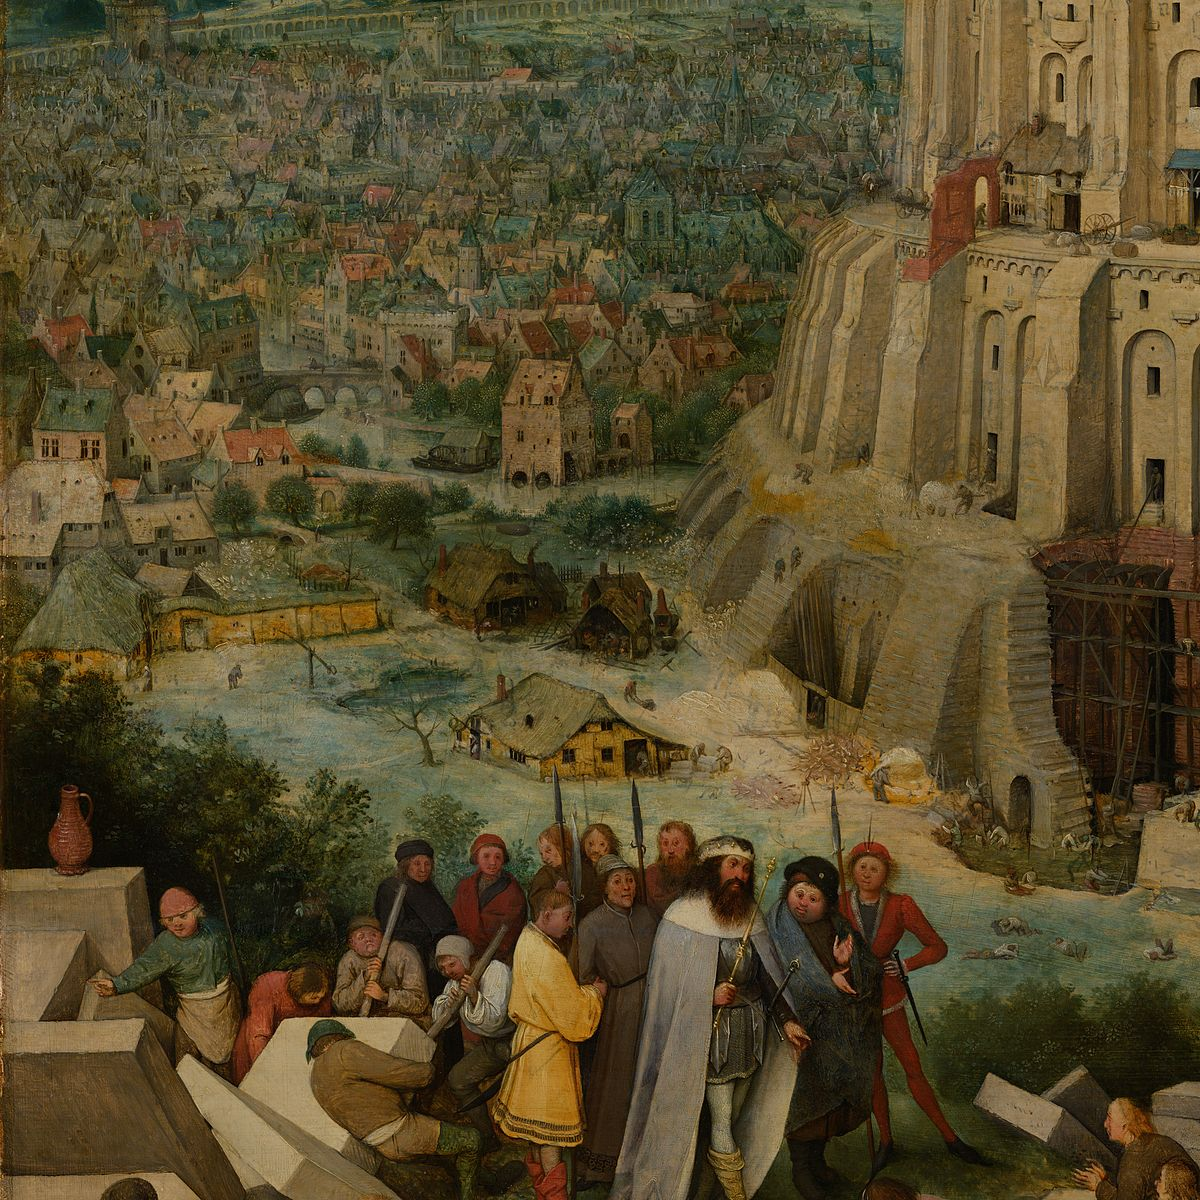 analysis of the tower of babel paintings The parable of the blind by pieter bruegel the elder an example of 16th century protestant reformation art the parable of the blind (1568)  both in the kunsthistoriches museum, vienna, this late work of religious art by pieter bruegel the elder relies on a diagonal spatial arrangement  • tower of babel (1563) • for more about 16th.